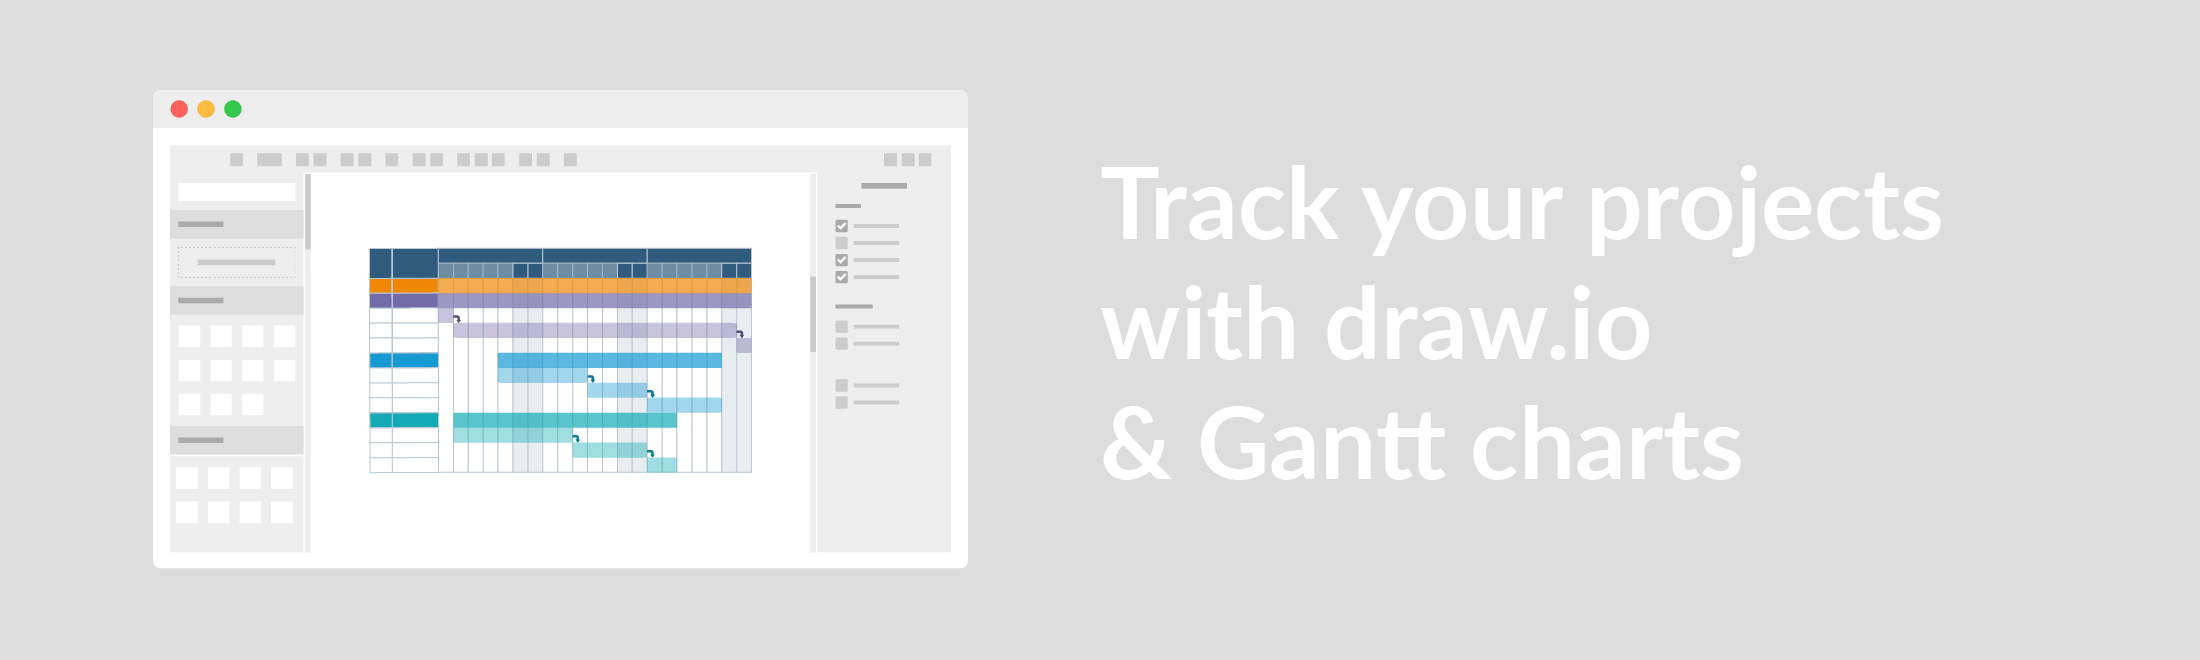 Improve productivity with draw.io Gantt Charts